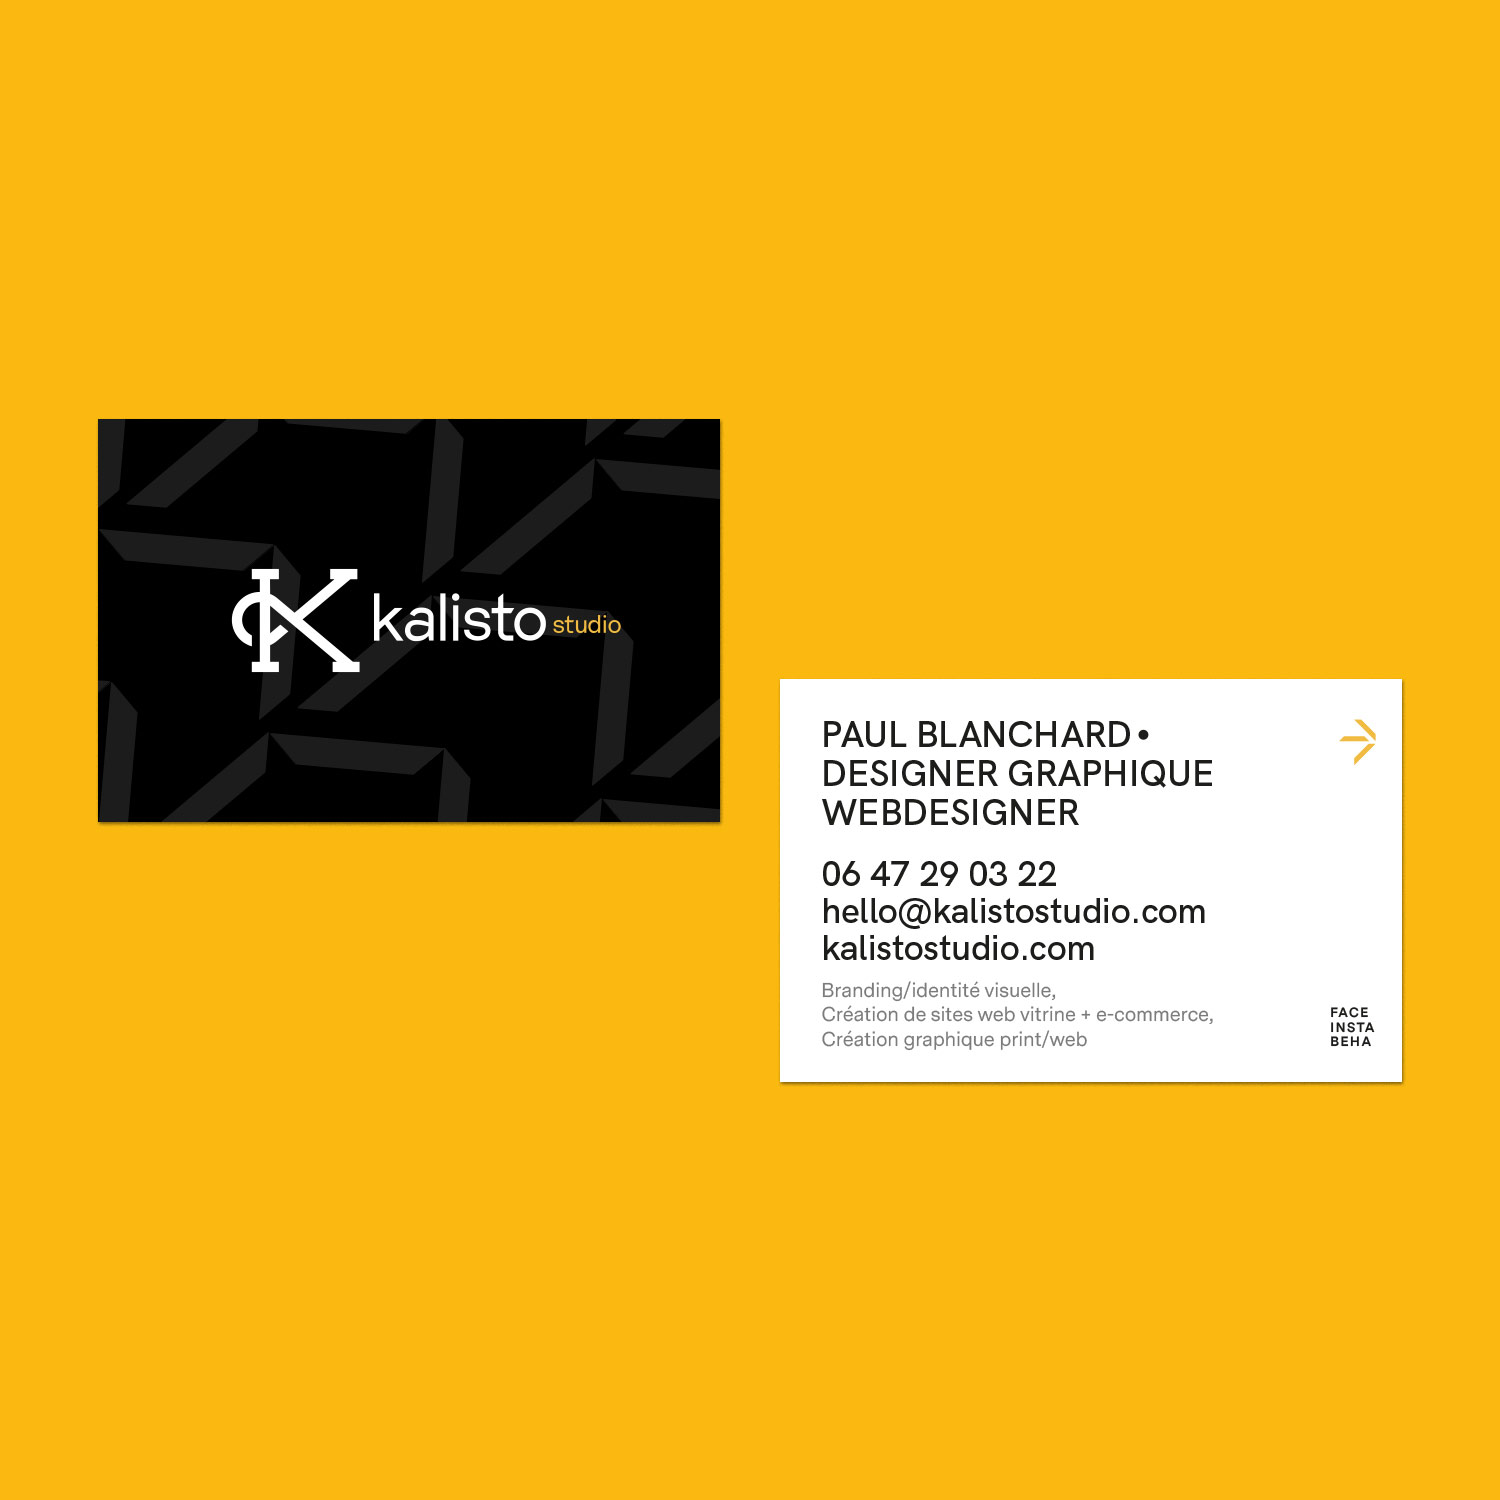 Kalisto studio business cards mockup personal branding and icon set branding graphic design webdesign